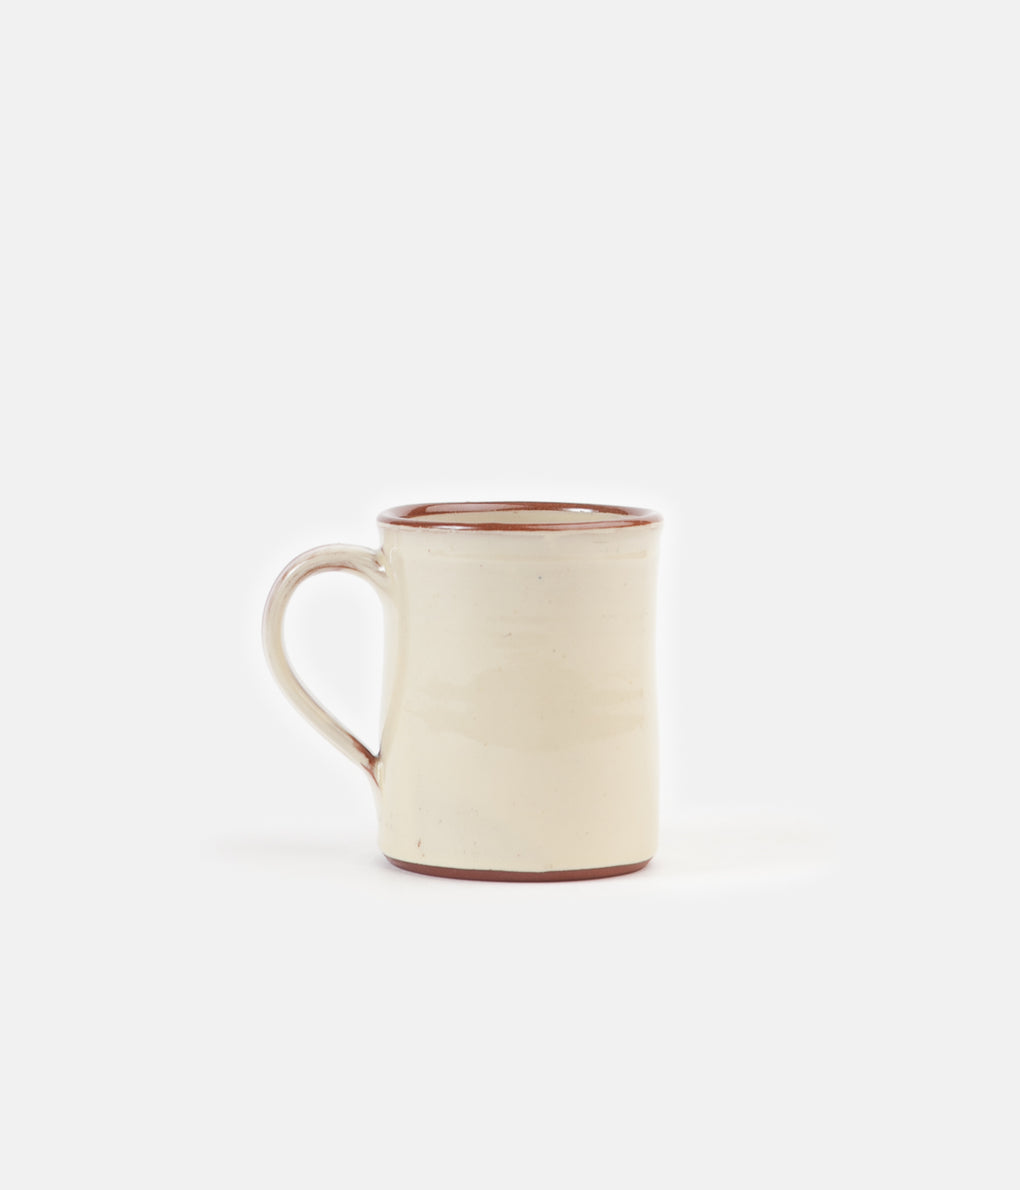 Tender Hand Thrown Natural Red Clay Coffee Mug - Clear Glaze